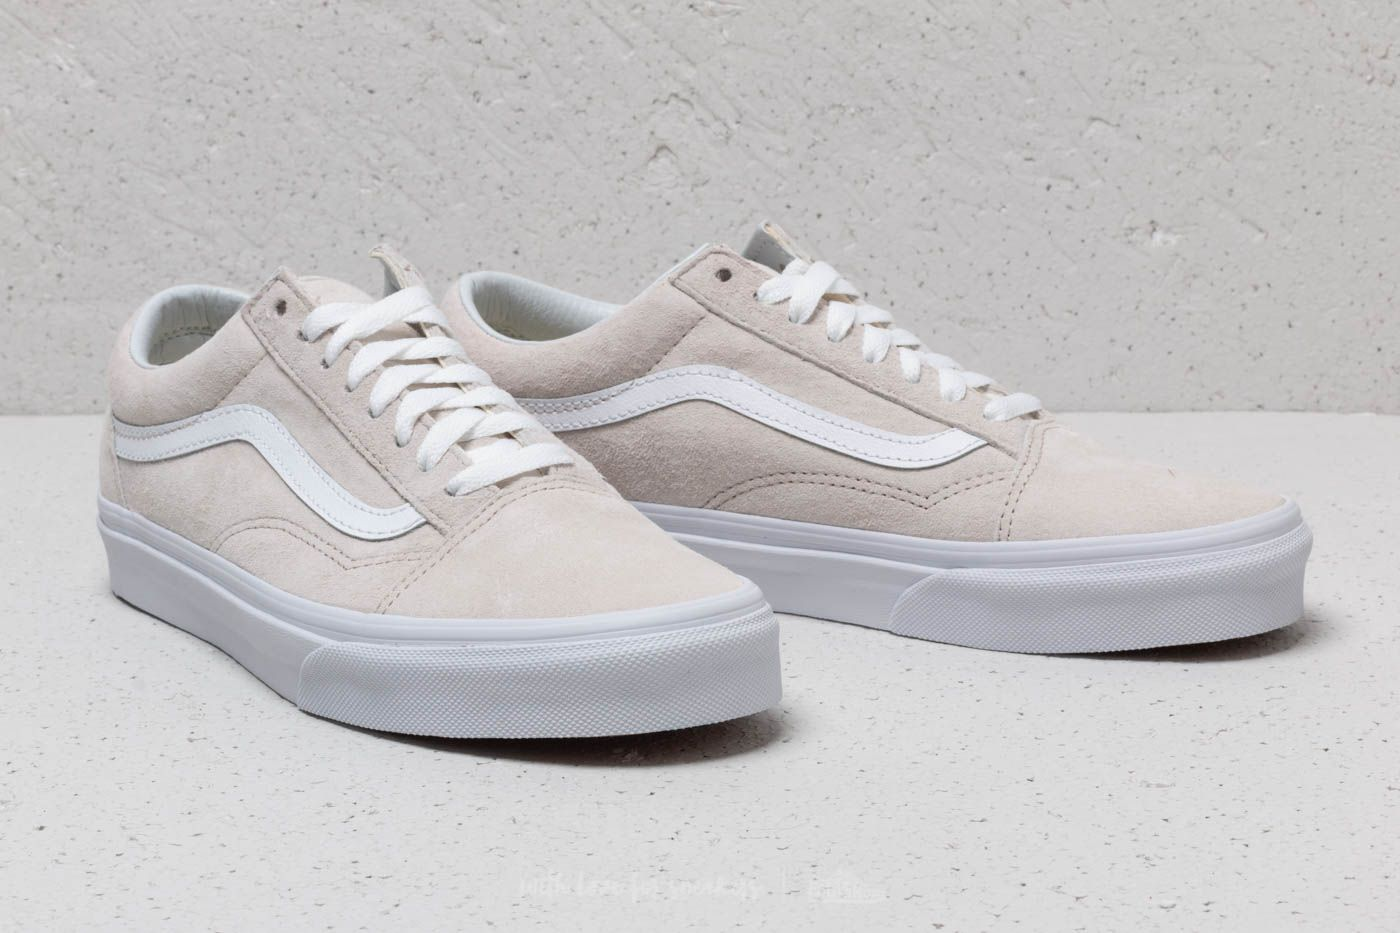 Vans Old Skool (Pig Suede) Moonbeam True White | Footshop